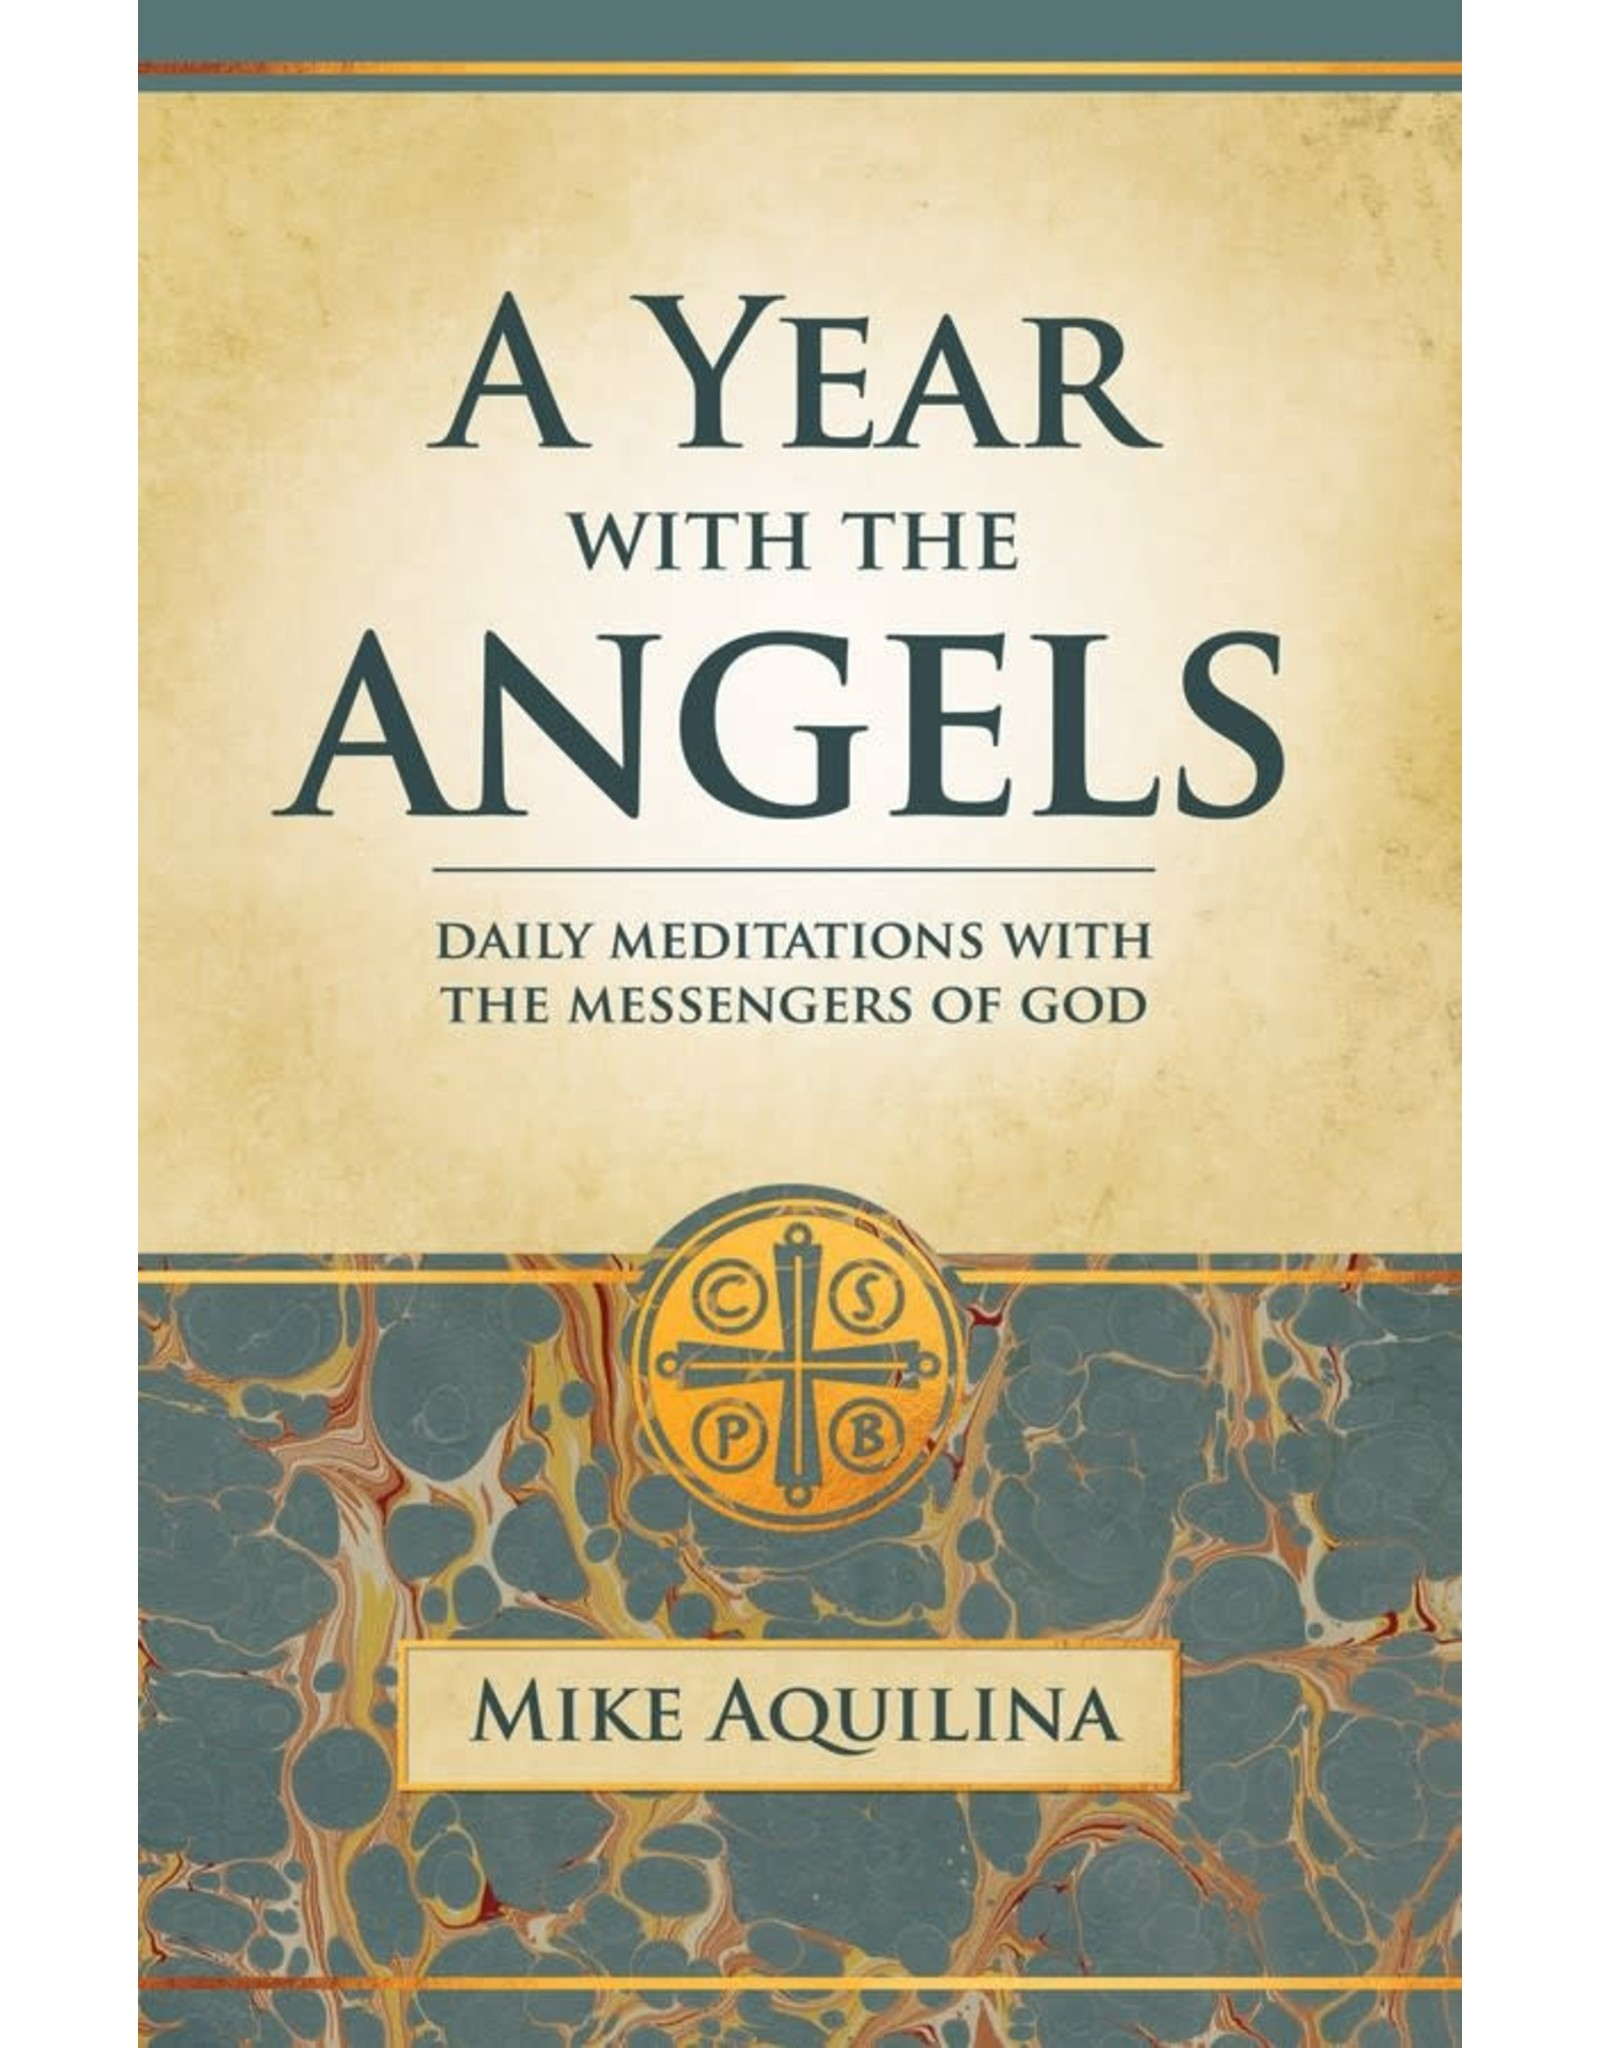 A Year with the Angels: Daily Meditations with the Messengers of God Mike Aquilina  - Paperback